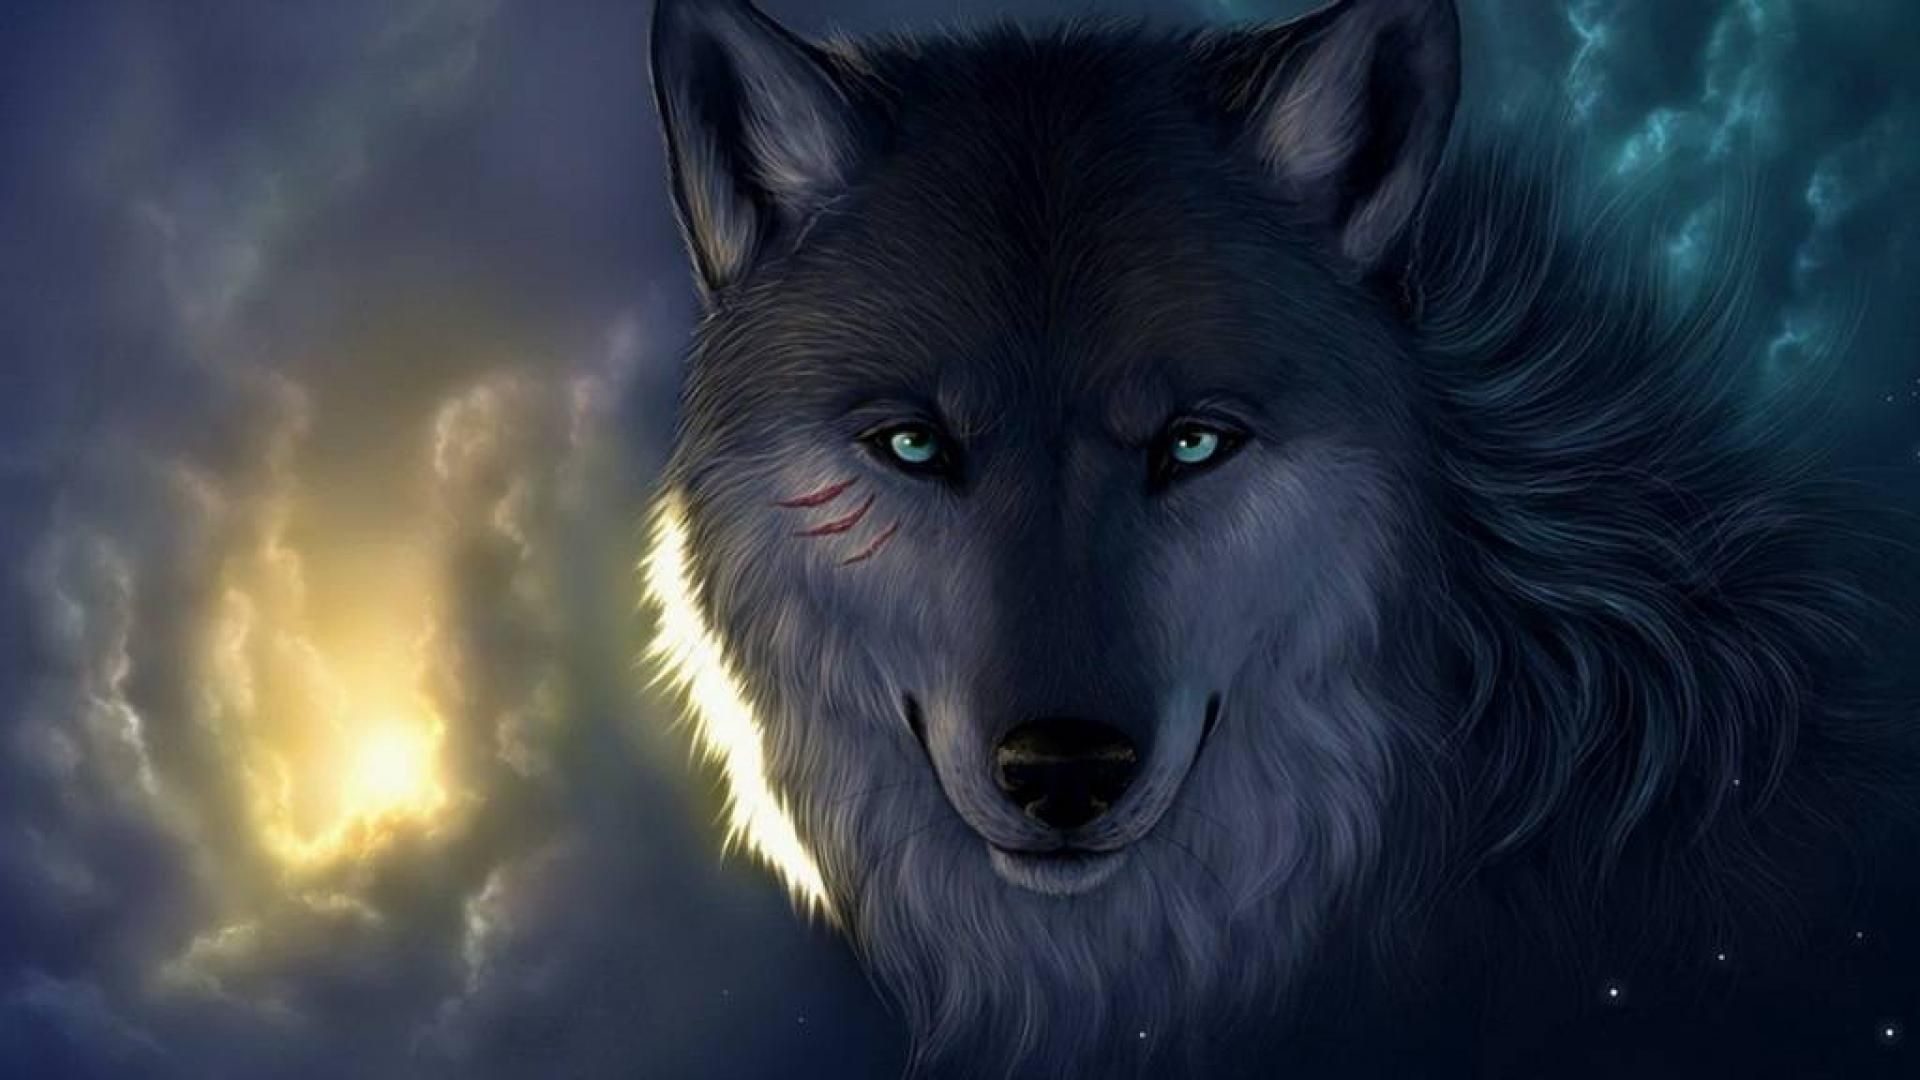 Twilight Wolf Wallpaper 70 Images